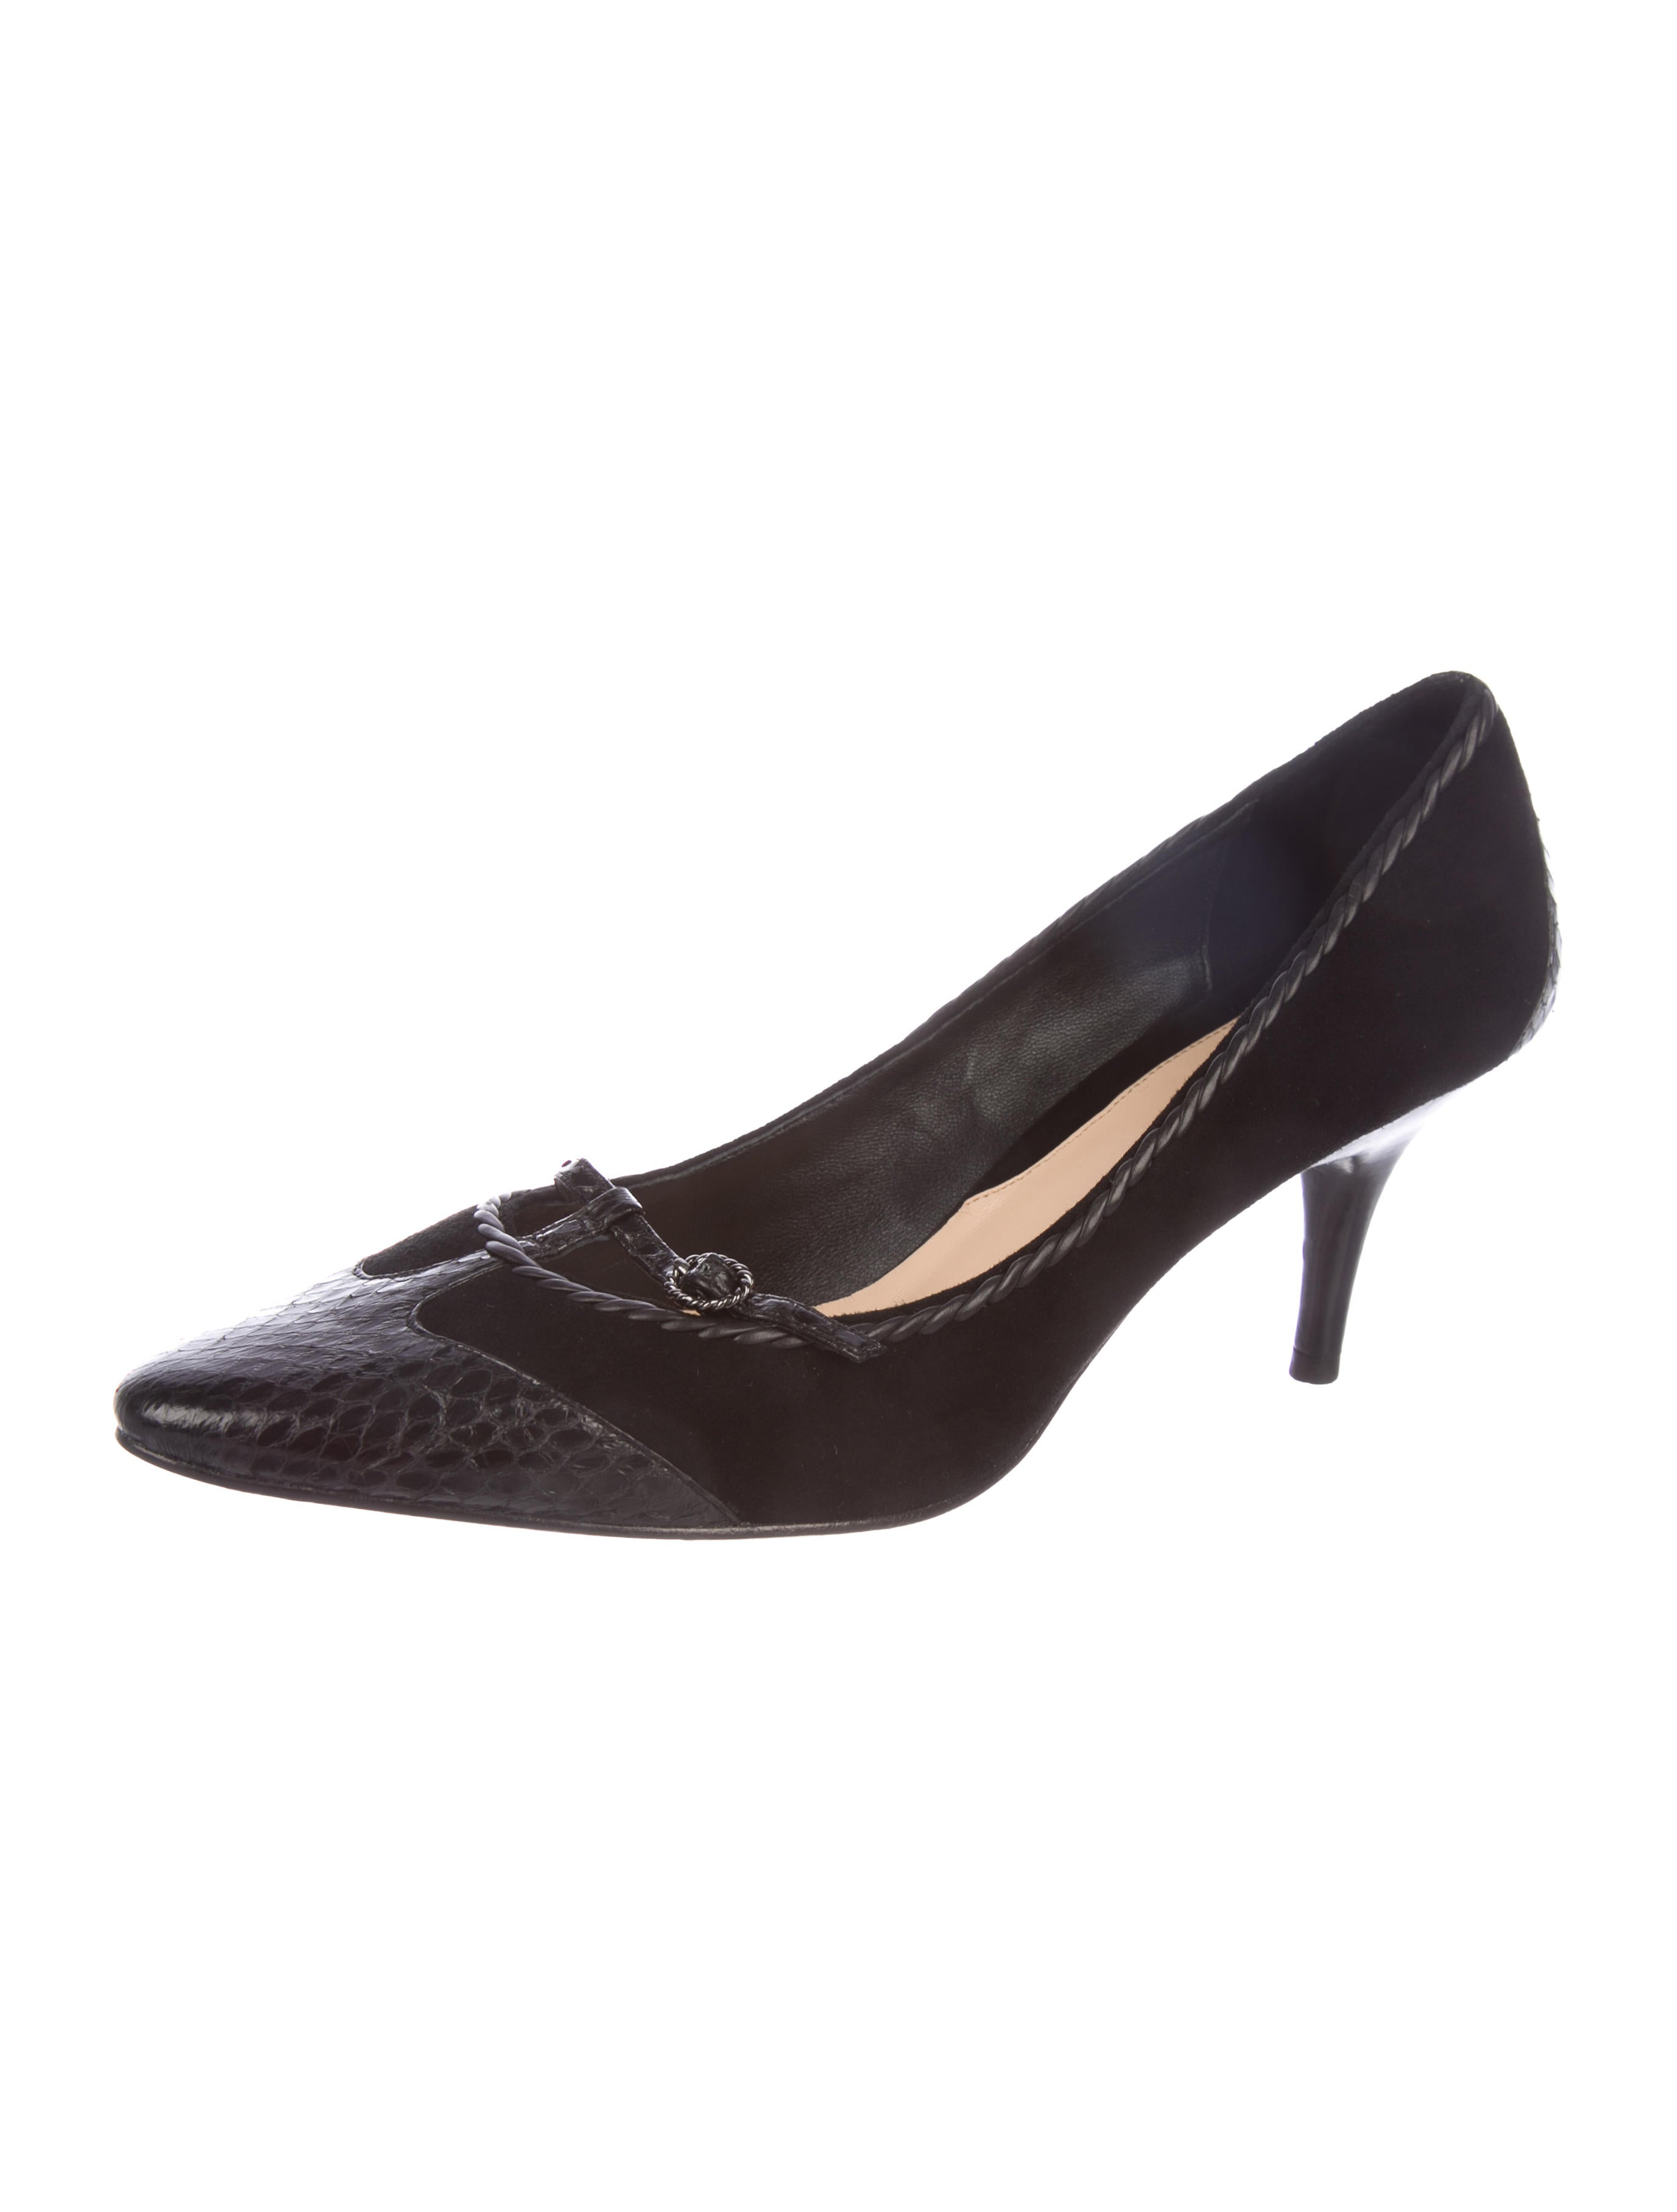 Cole Haan Snakeskin-Trimmed Pointed-Toe Pumps how much sale online best seller cheap price visit new sale online low price fee shipping FGN4z